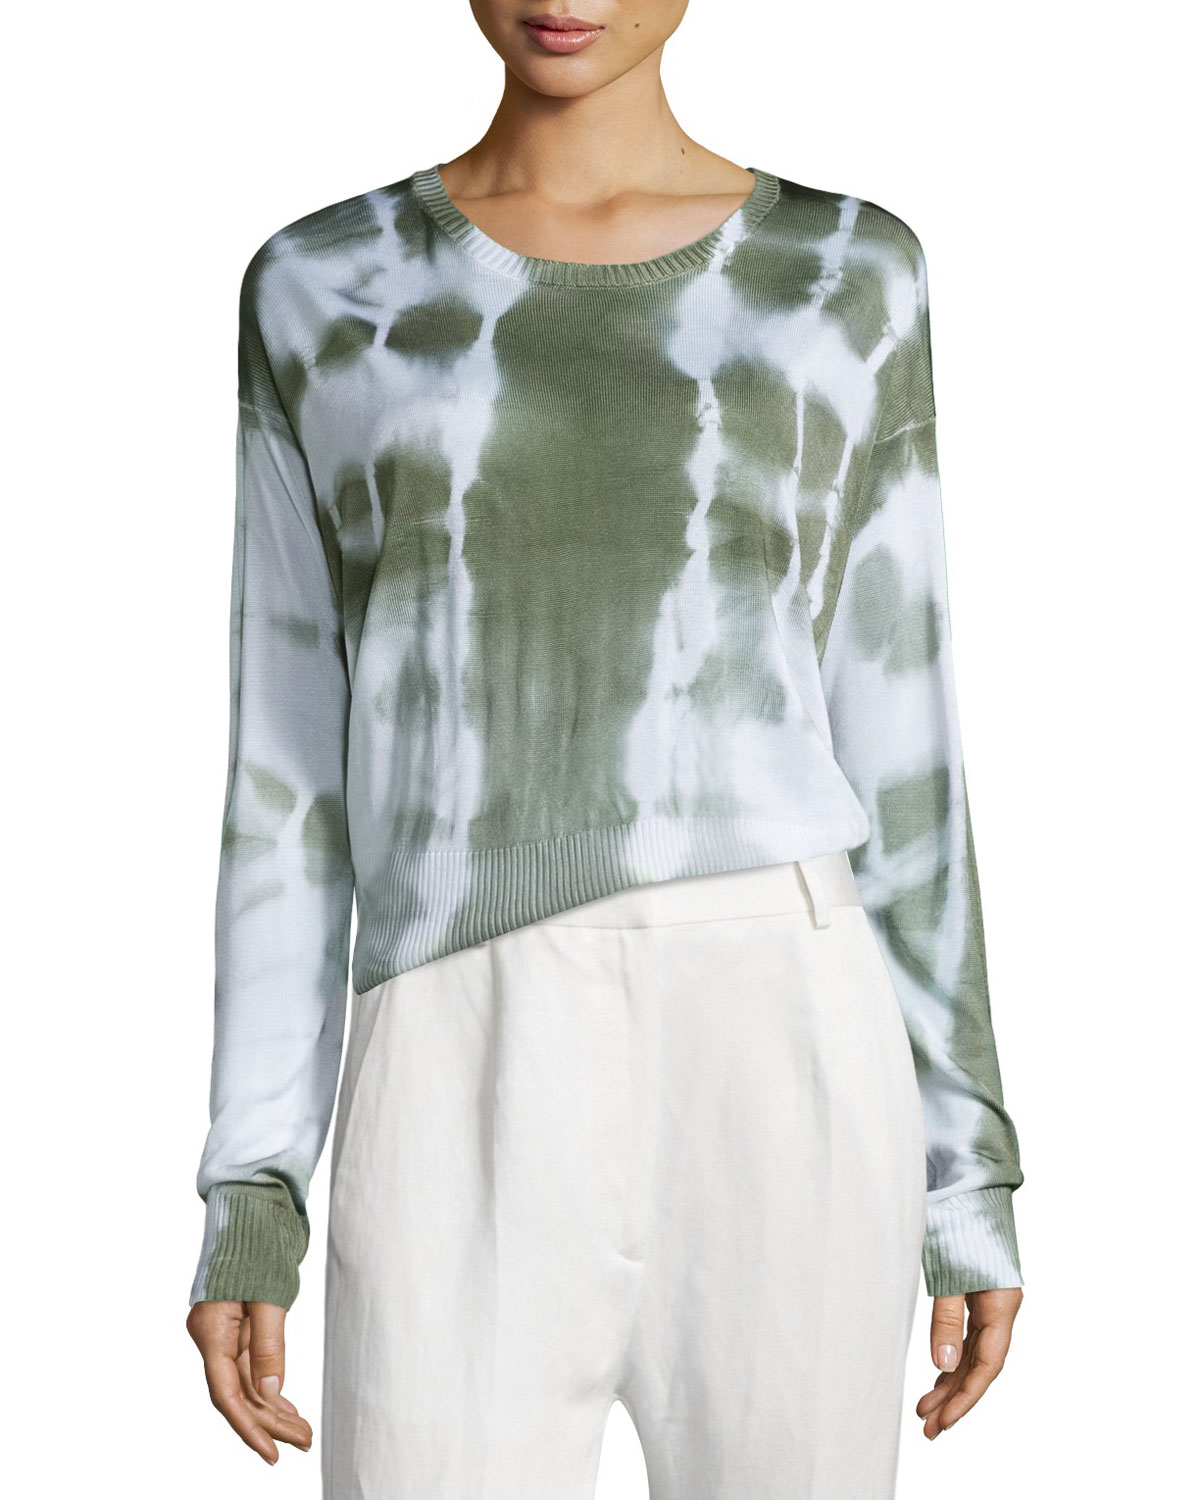 Long-Sleeve Knit Batik Top, Off White/Green